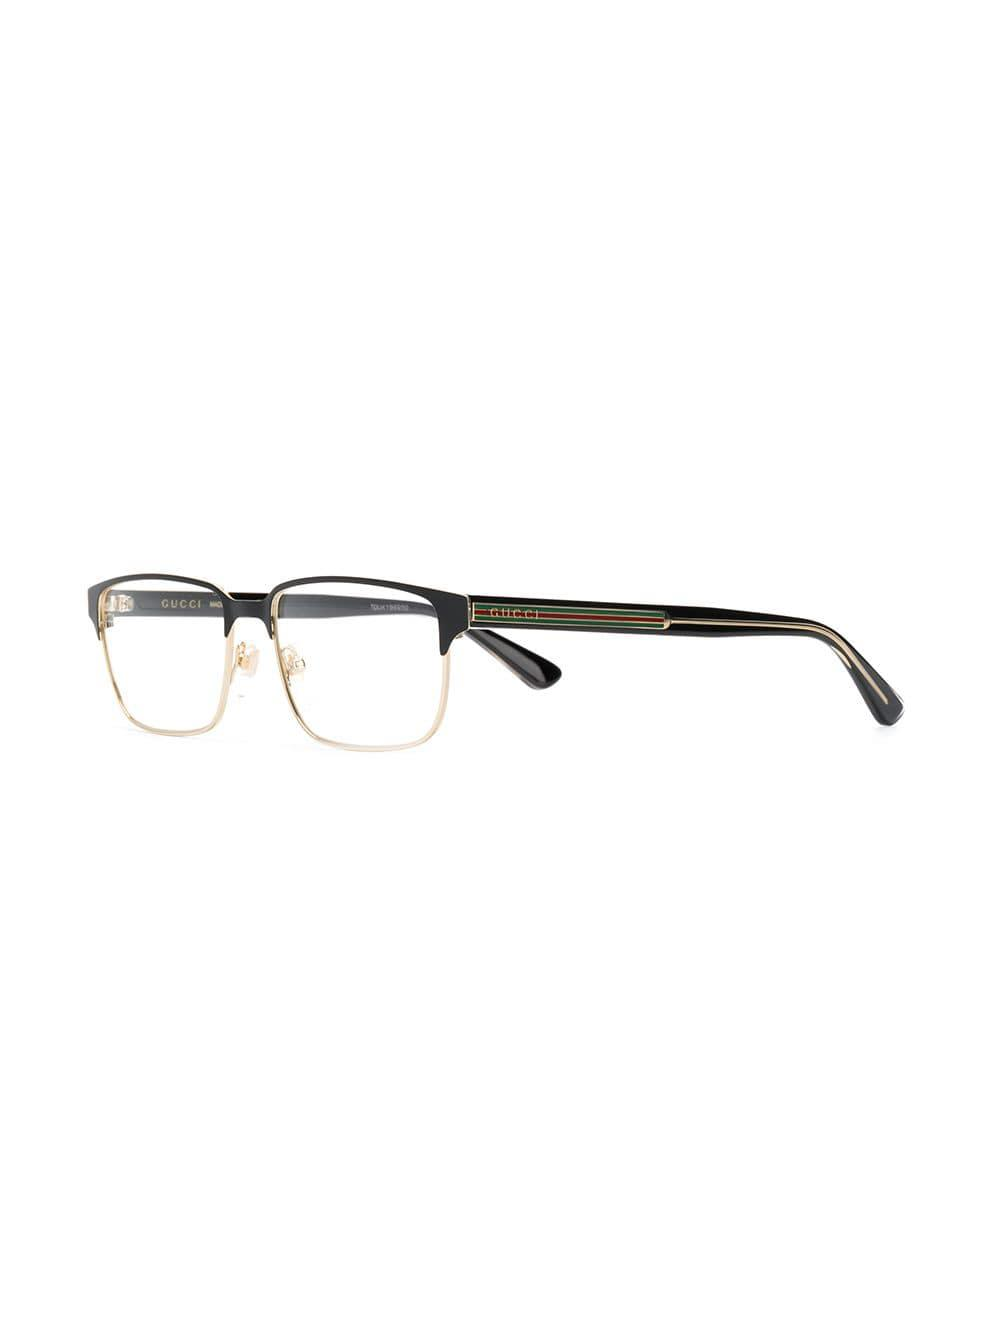 c373b10a7bf Lyst - Gucci Rectangle Frame Glasses in Black for Men